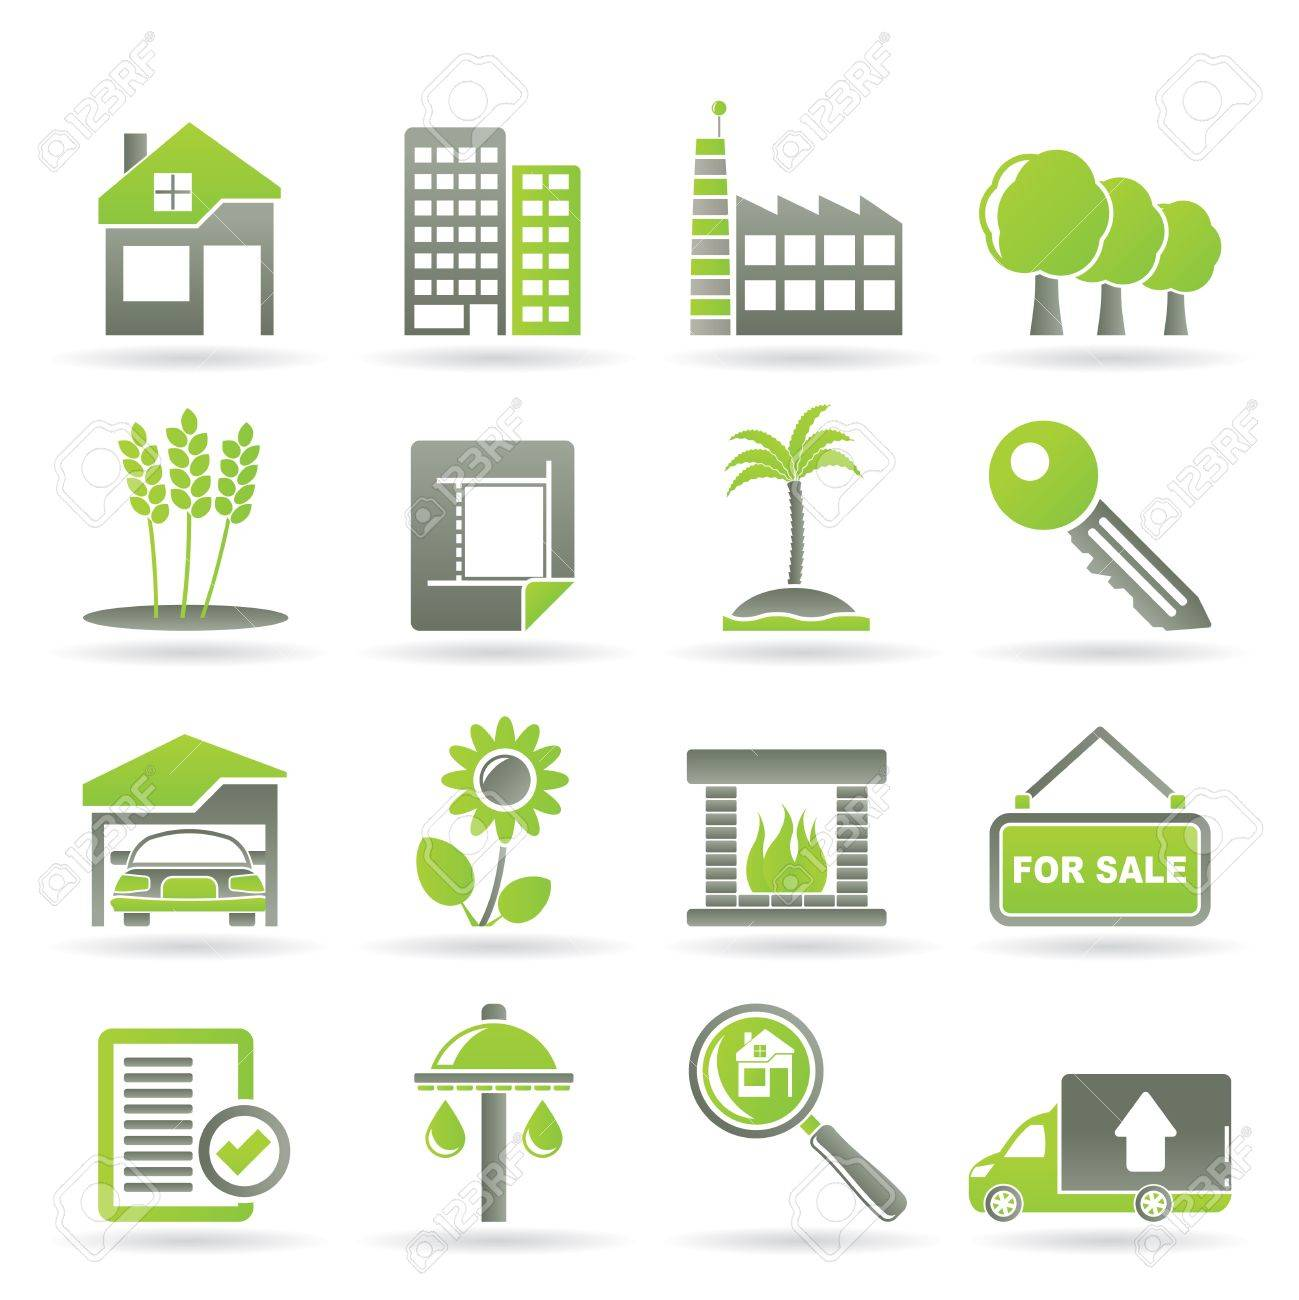 Real Estate and building icons - Vector Icon Set Stock Vector - 9534678